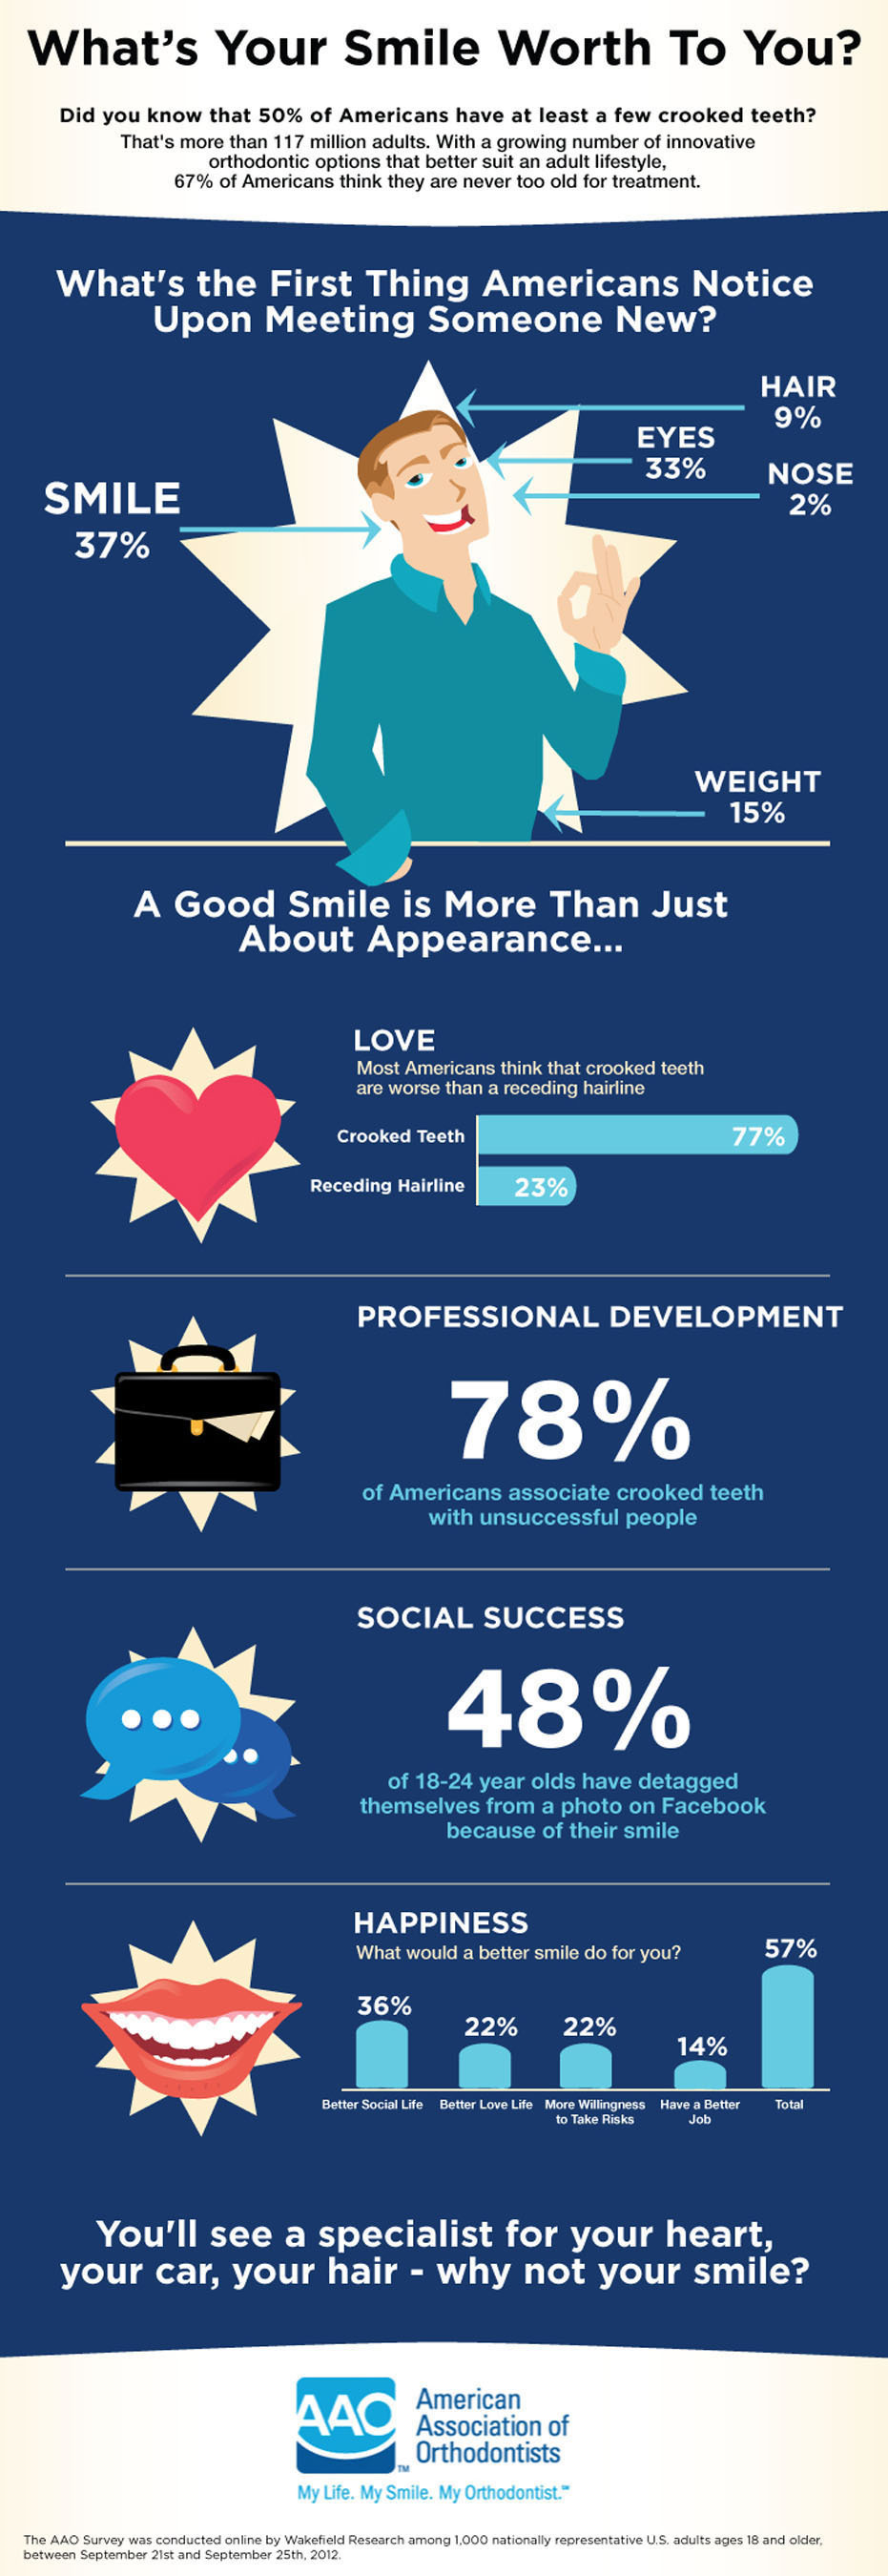 What's Your Smile Worth To You?.  (PRNewsFoto/American Association of Orthodontists (AAO))